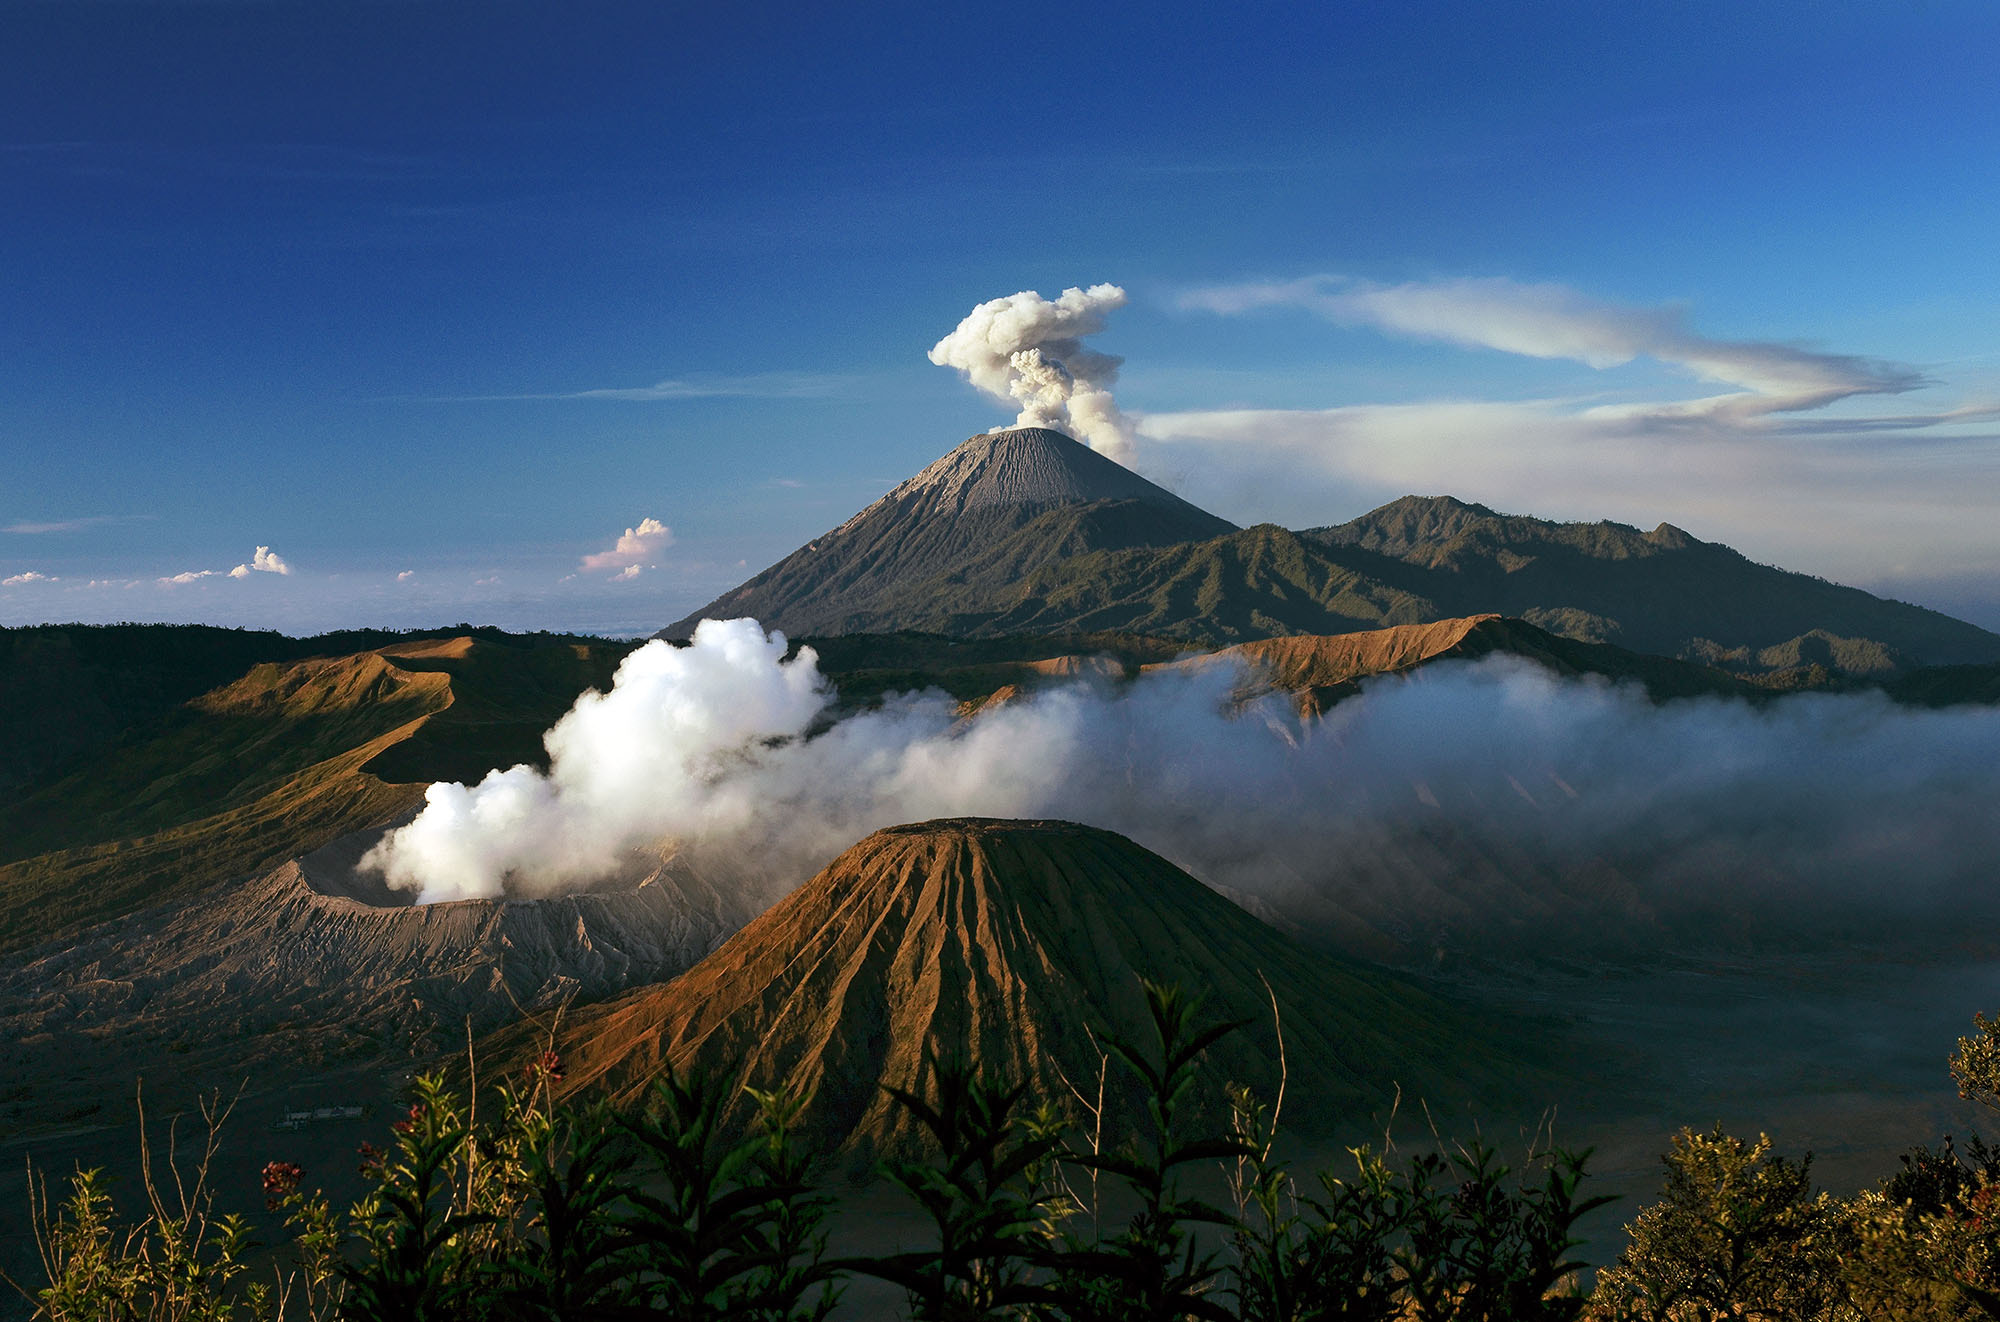 Photograph Mt.Bromo by Cherly Jong on 500px